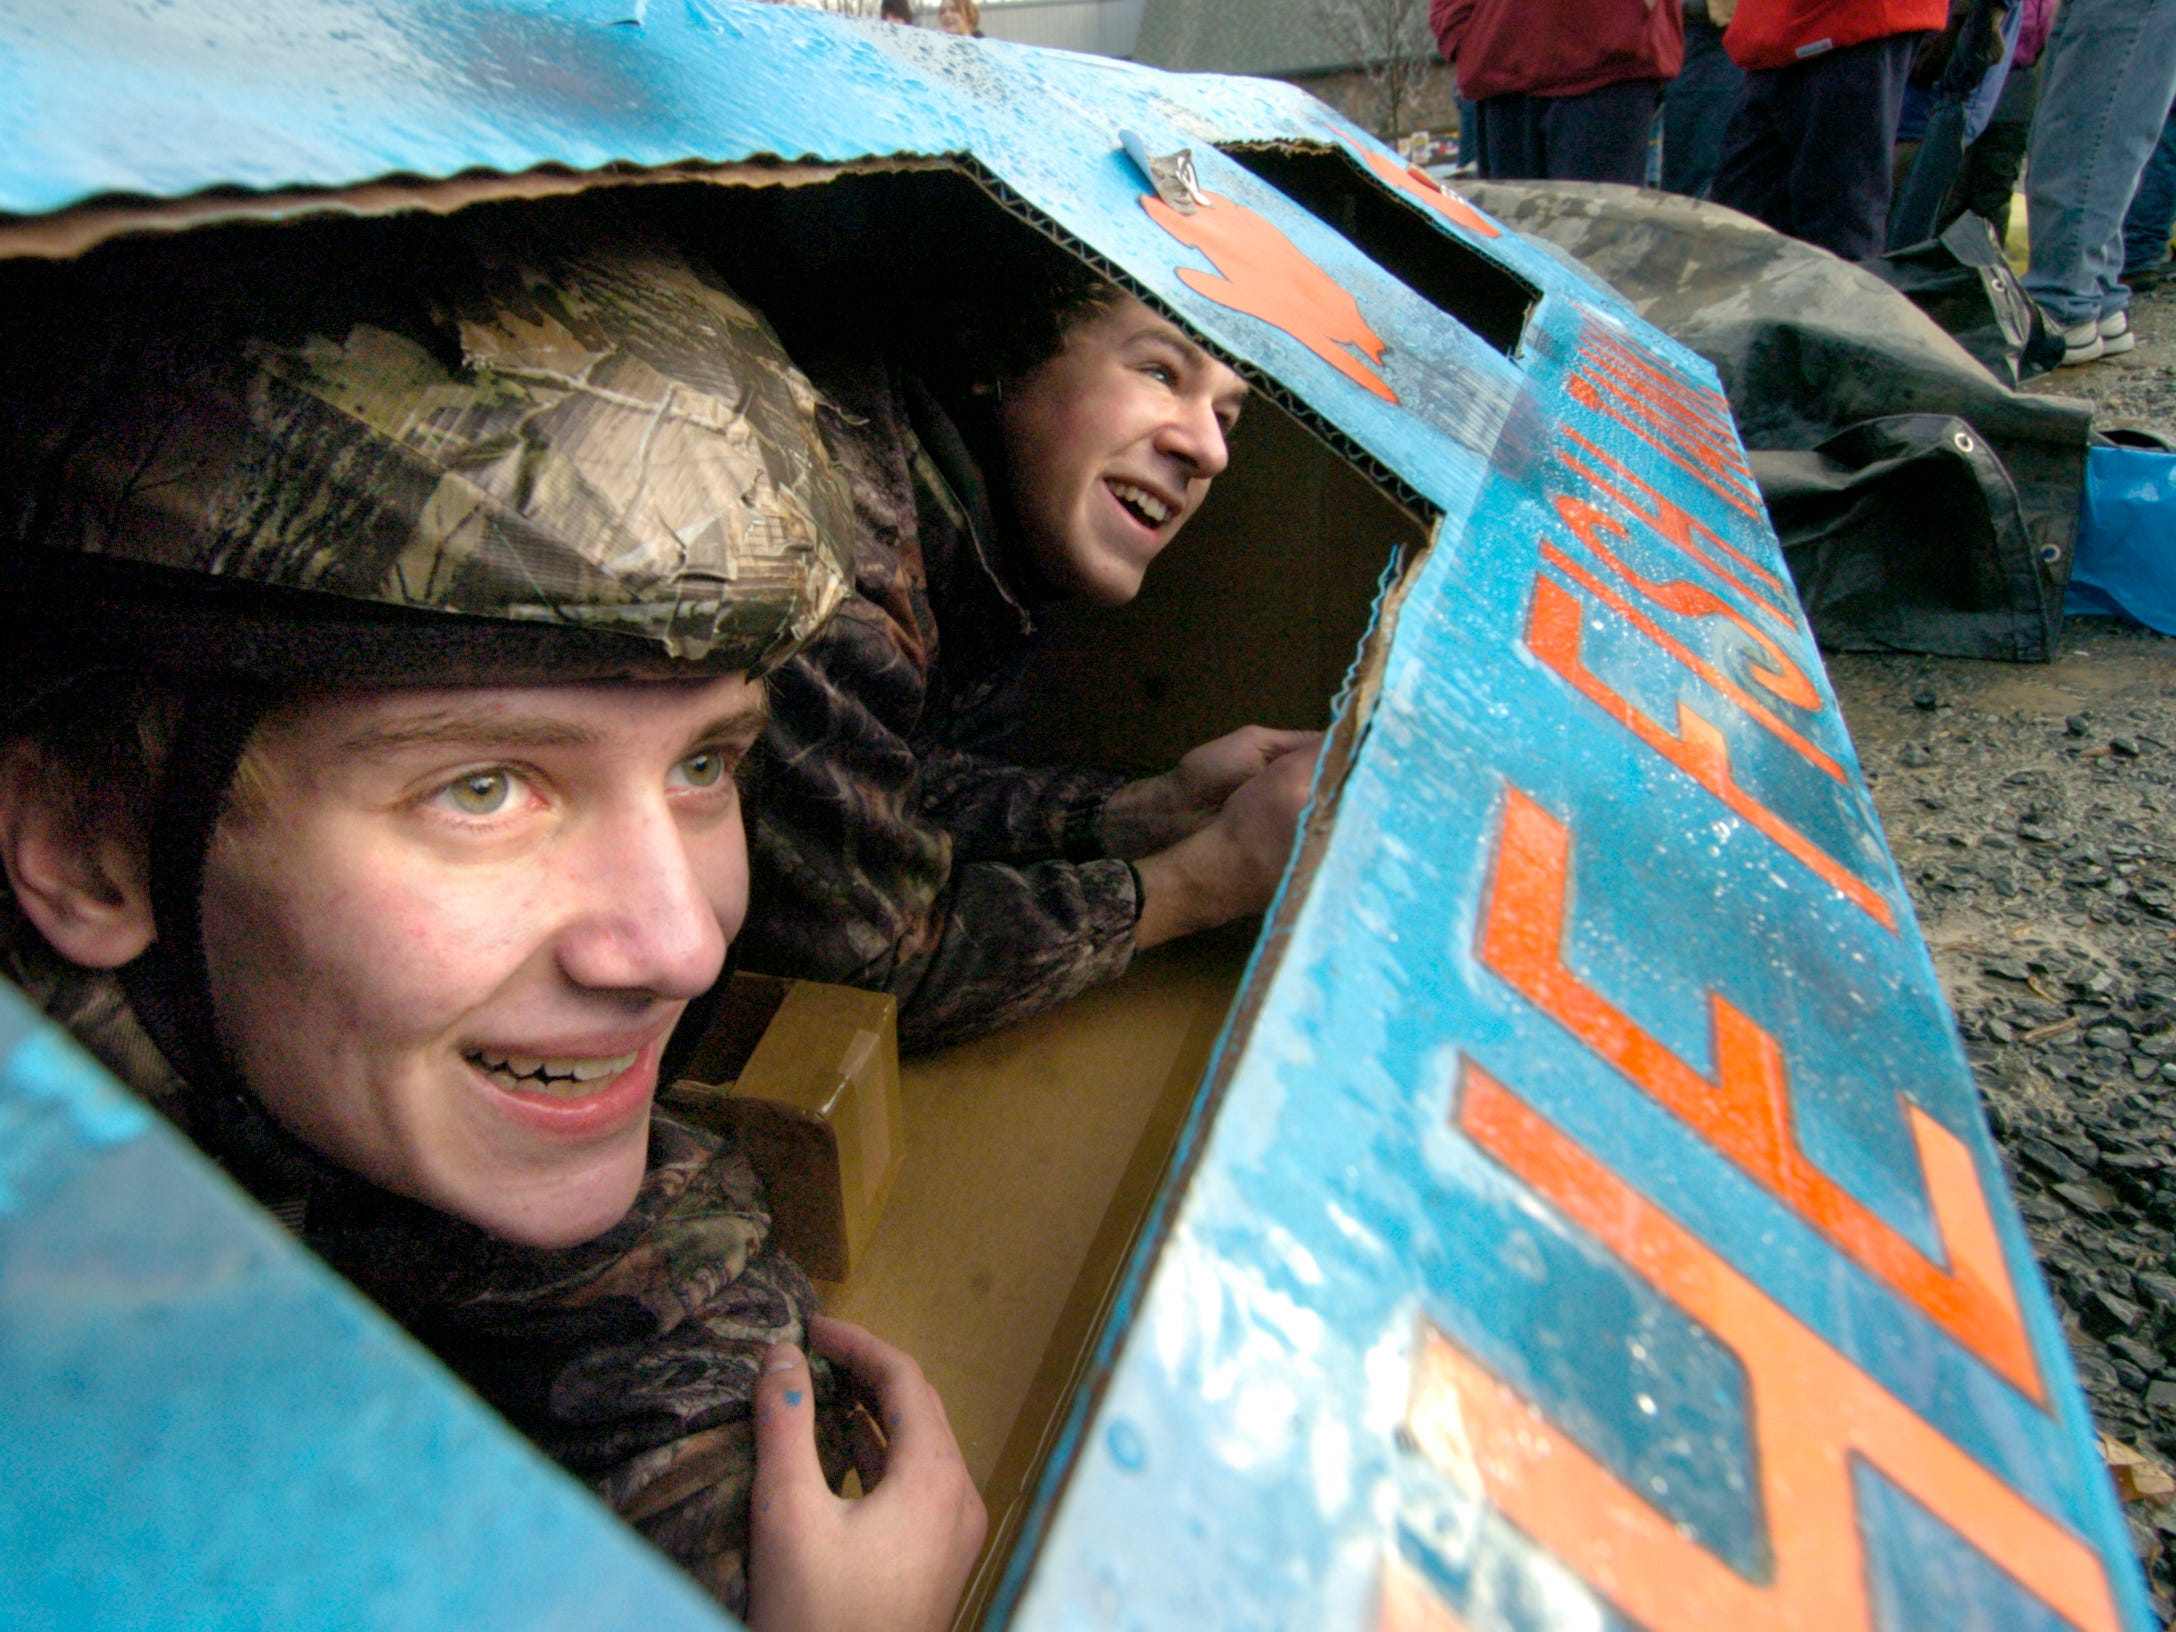 Justin Moore, 17, and Mike Keller, 17, look out of their Fish Tank vessel in the parking lot of Ski Roundtop before racing the tank down the tubing slope January 29, 2006. They spent roughly 40 hours, over 3 days, building the tank with their third teammate Andy Keller, 14.